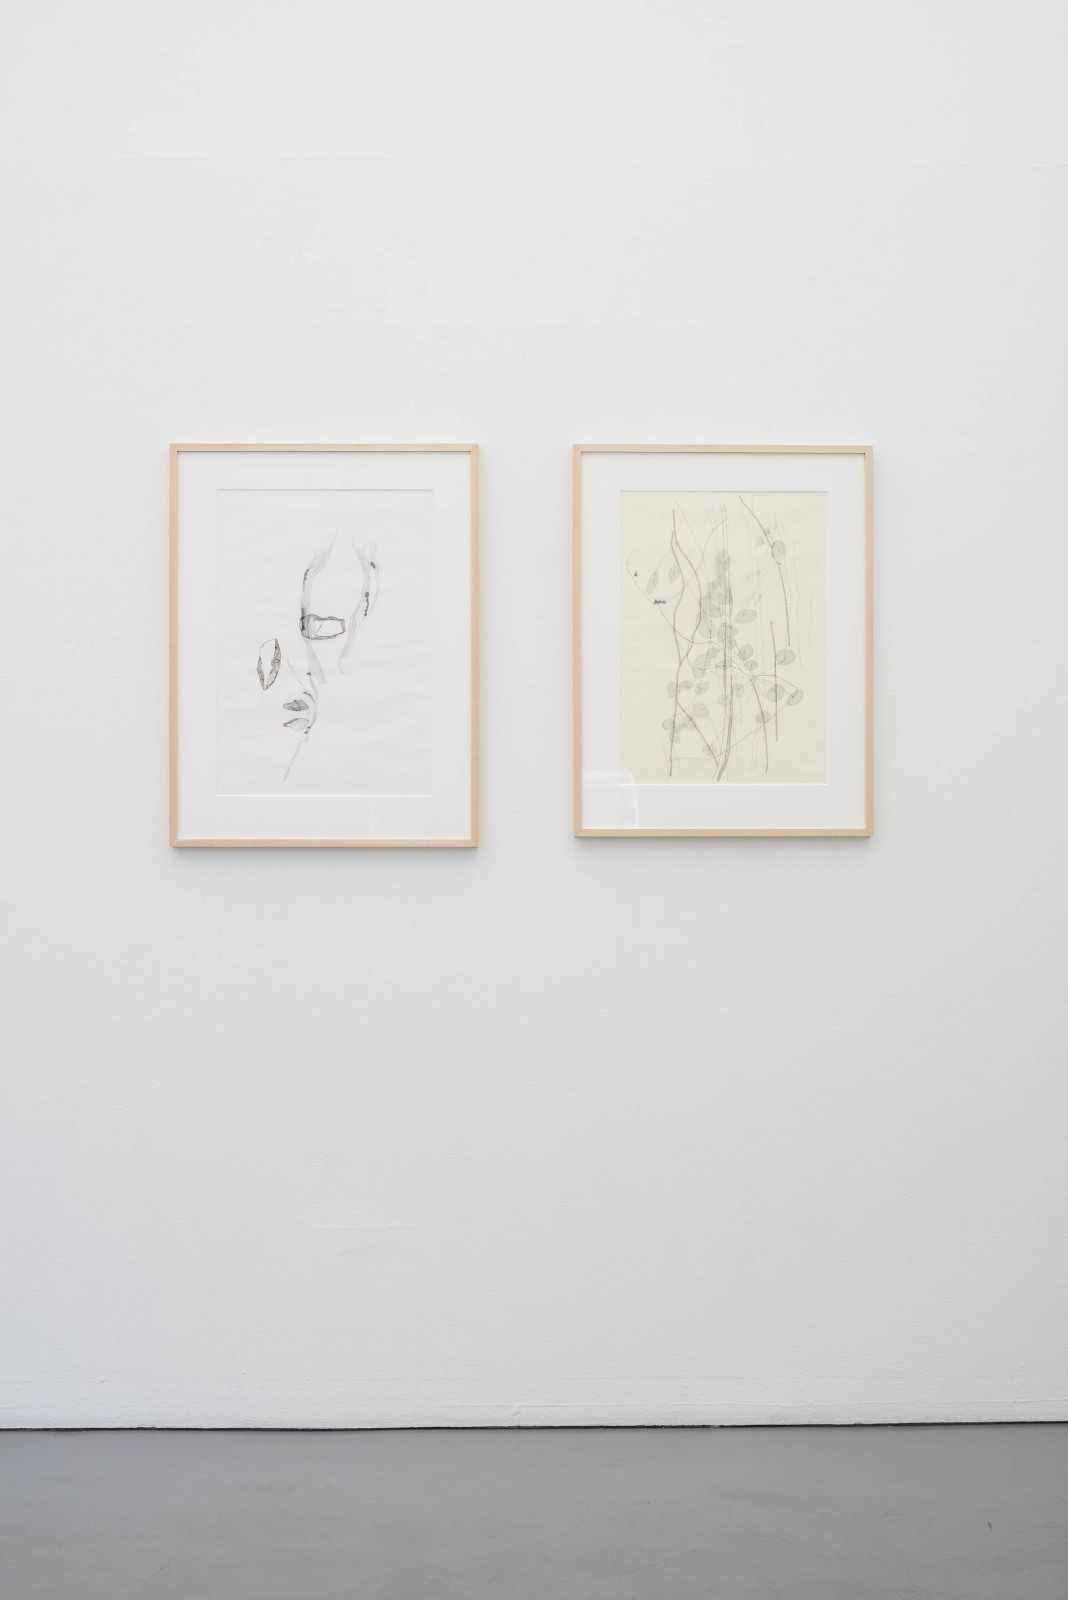 Silje Figenschou Thoresen (Born 1978, lives and works in Stockholm and Kirkenes, Norway). Two drawings from the series Vandret Linje, 2016, 60 x 43 cm / 58 x 41 cmThe images consist of several layers in different degrees of transparency. The starting point for this work has been documents from a Danish archaeological expedition in the 1920s to Varanger in Sápmi.